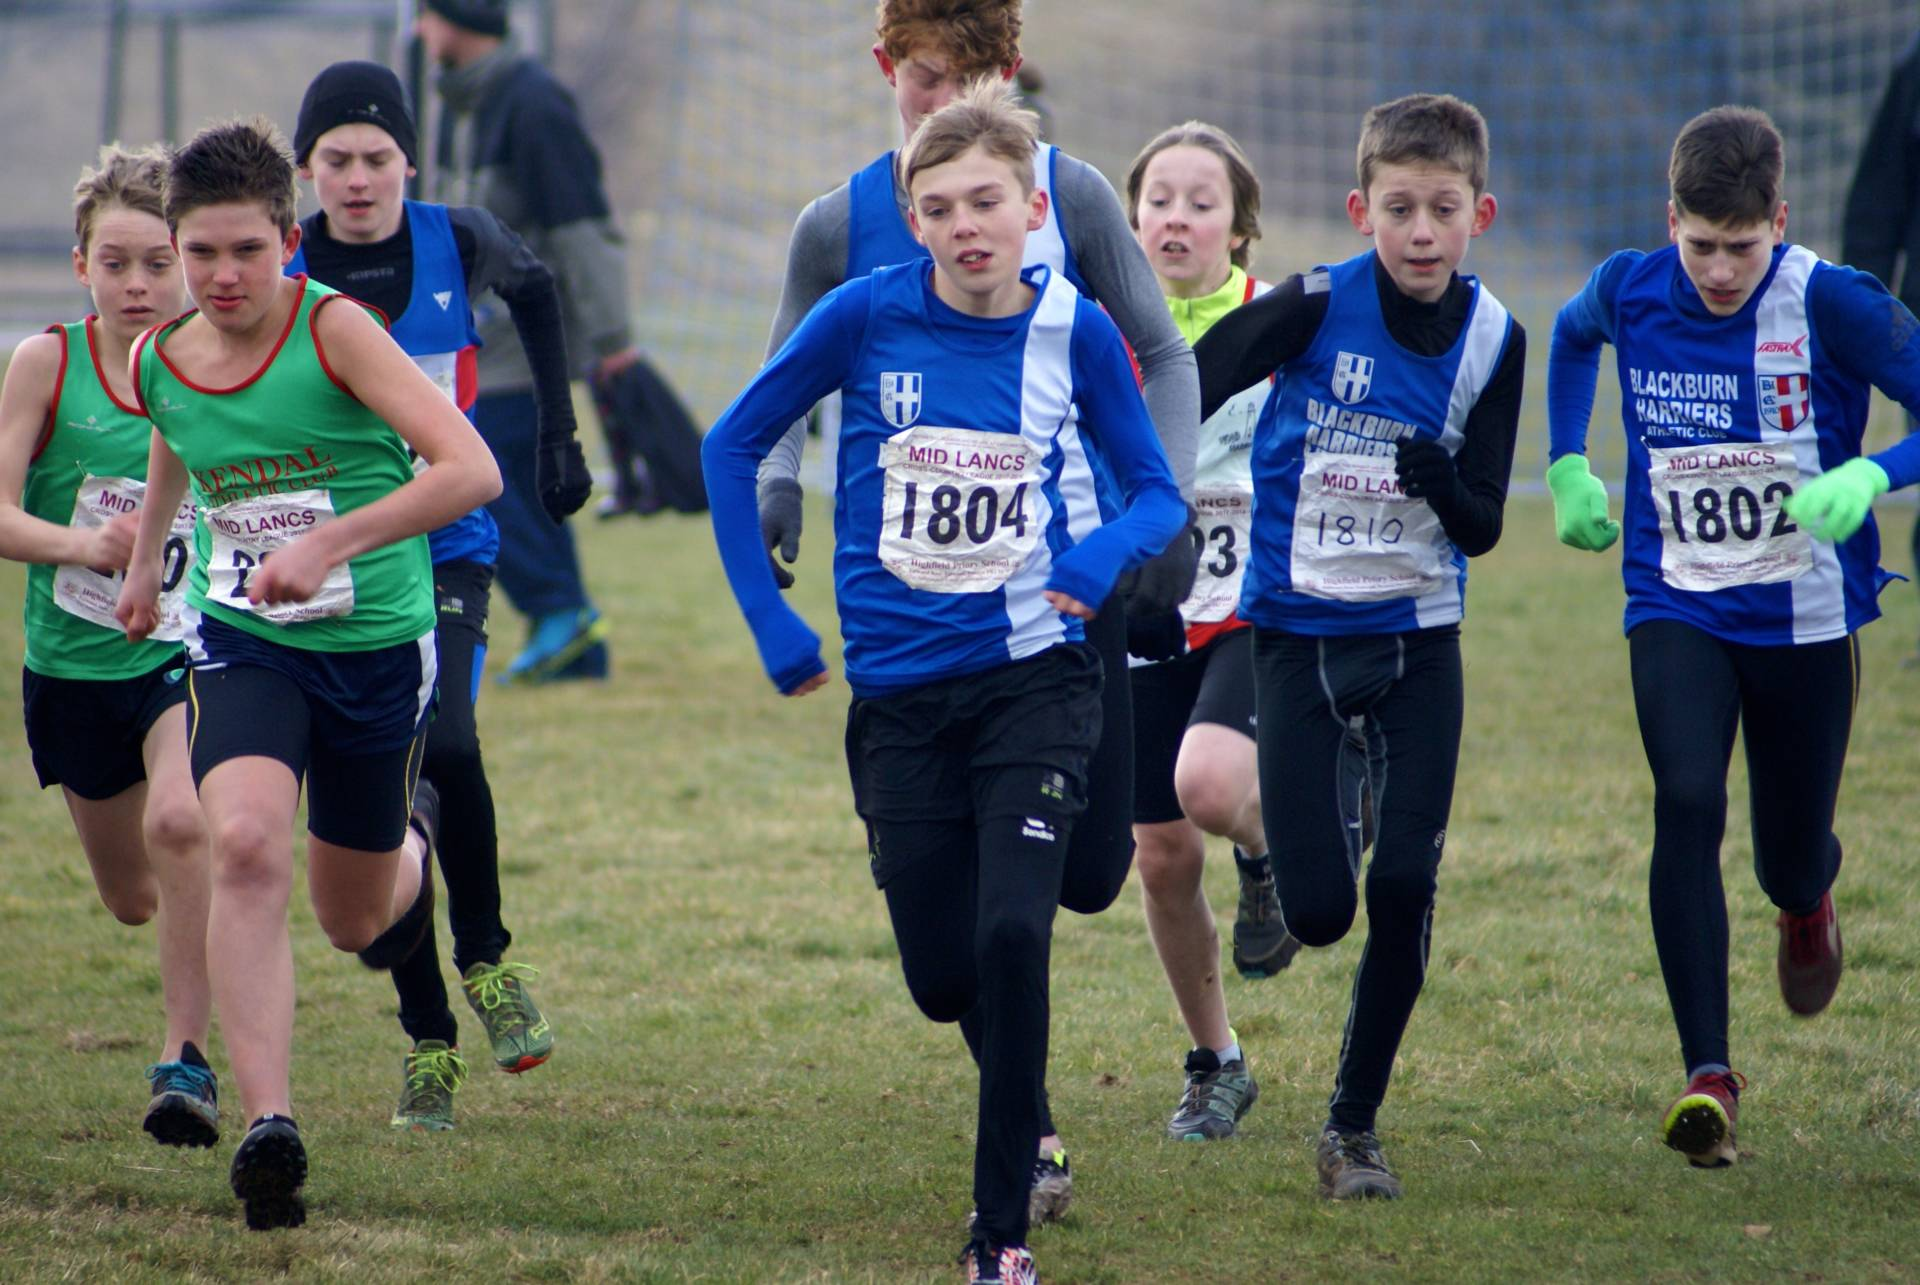 More Wins and Medals for the Harriers at Mid Lancs – Stan Bradshaw Pendle Round